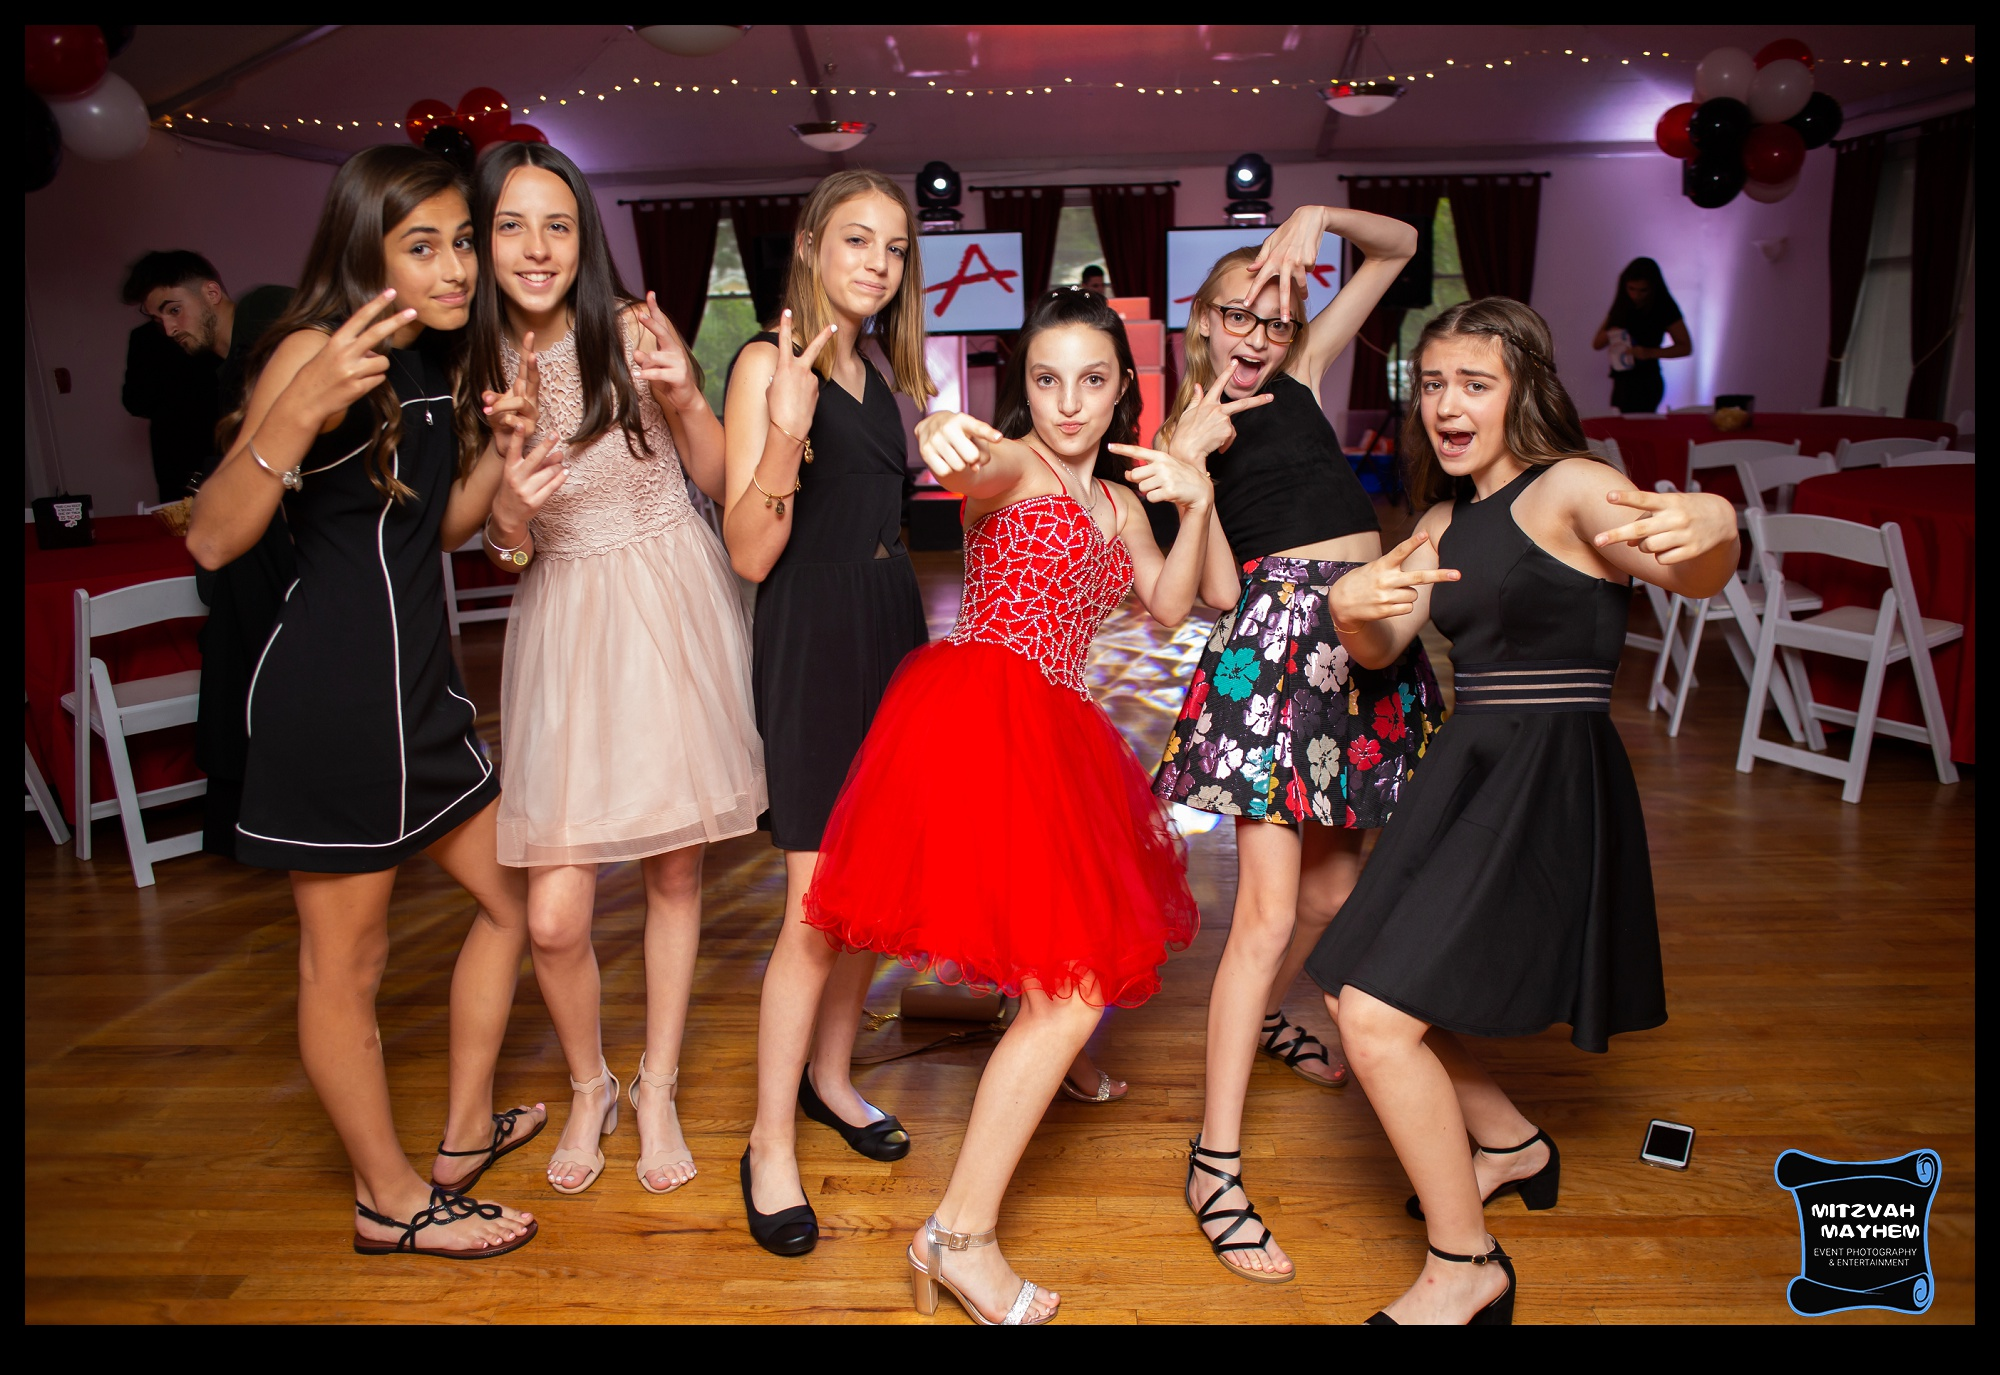 nj-bat-mitzvah-photography-6649.JPG